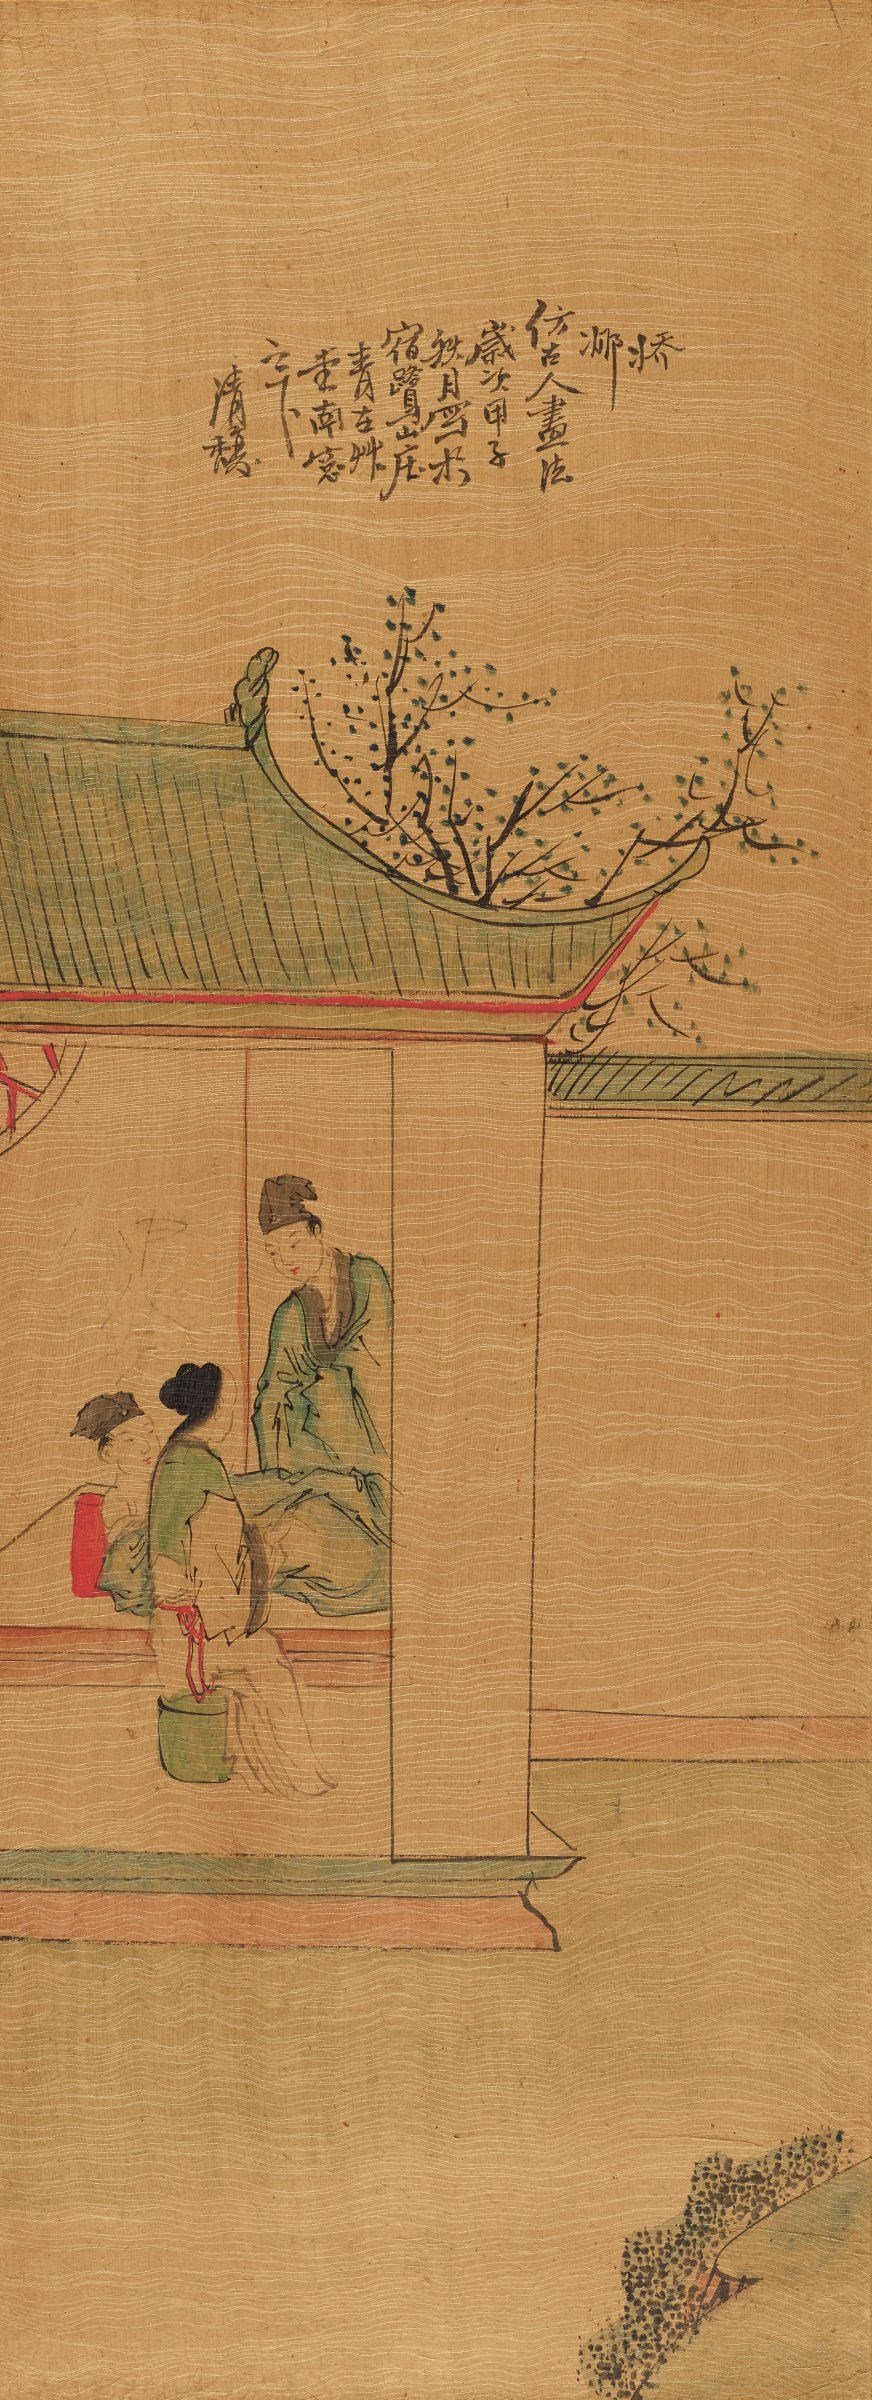 """Mounted and framed painting inscribed with artist's name: Cheongtoe as well as the date """"Autumn 1924"""" Perhaps a narrative scene possibly of a medical encounter?"""